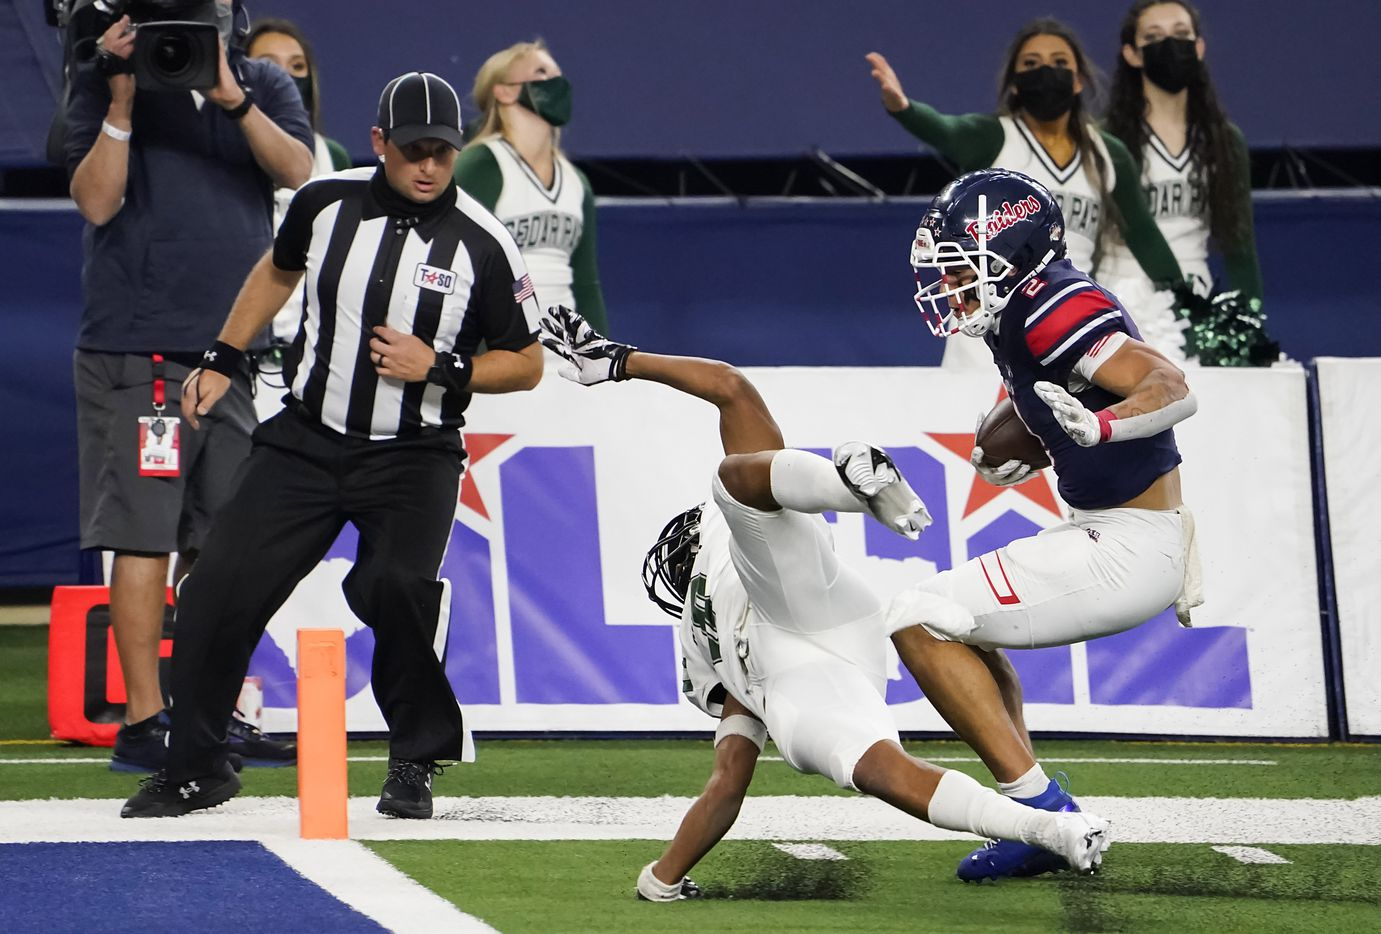 Denton Ryan Billy Bowman Jr. (2) slips past Cedar Park defensive back Michael Putney (6) to score on a hauls in a 37-yard touchdown pass from quarterback Seth Henigan during the first half of the Class 5A Division I state football championship game at AT&T Stadium on Friday, Jan. 15, 2021, in Arlington, Texas. (Smiley N. Pool/The Dallas Morning News)